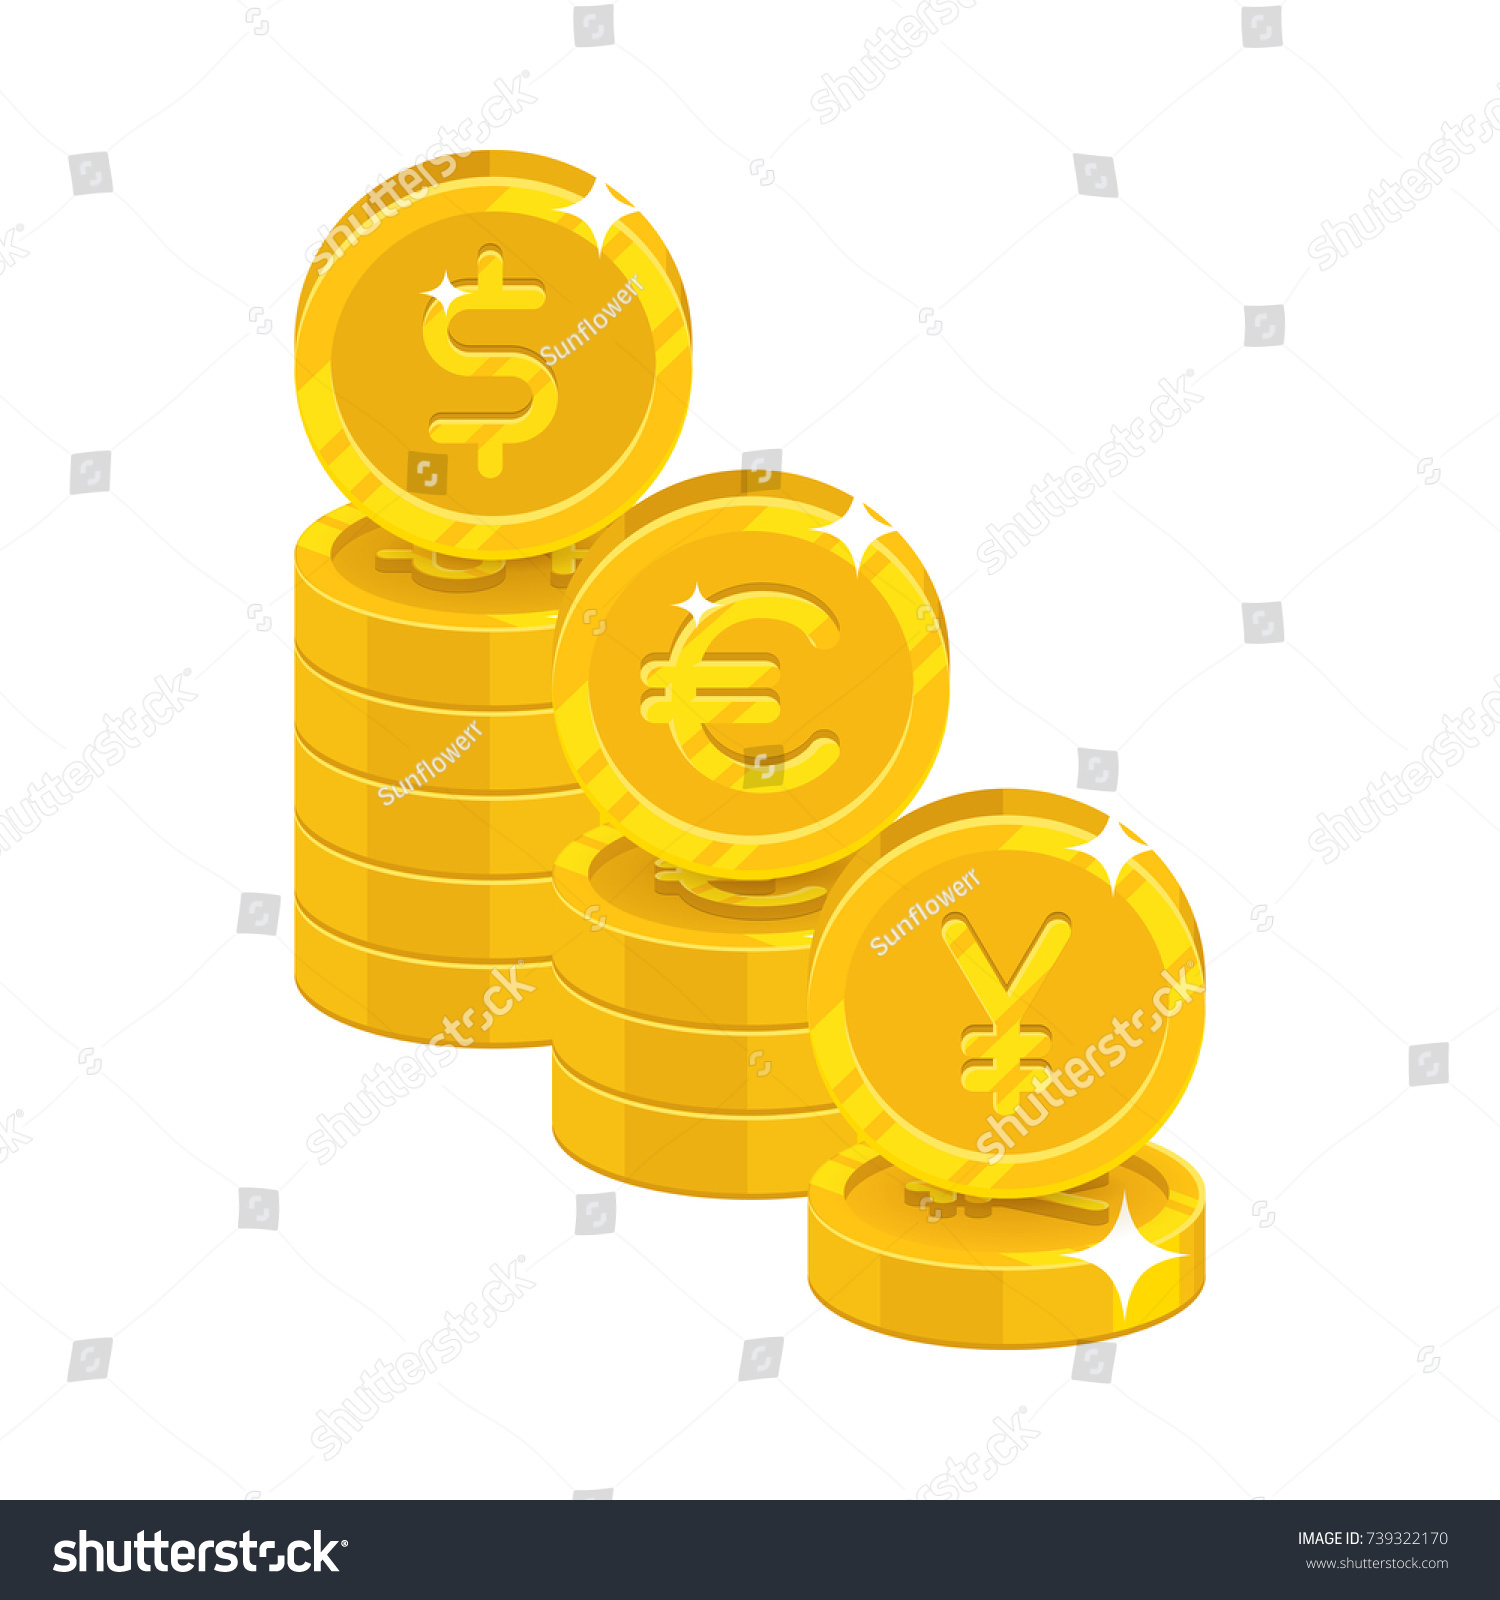 Dollar euro yen coins three piles stock vector 739322170 dollar euro yen coins three piles of gold coinage with currency symbols for biocorpaavc Gallery